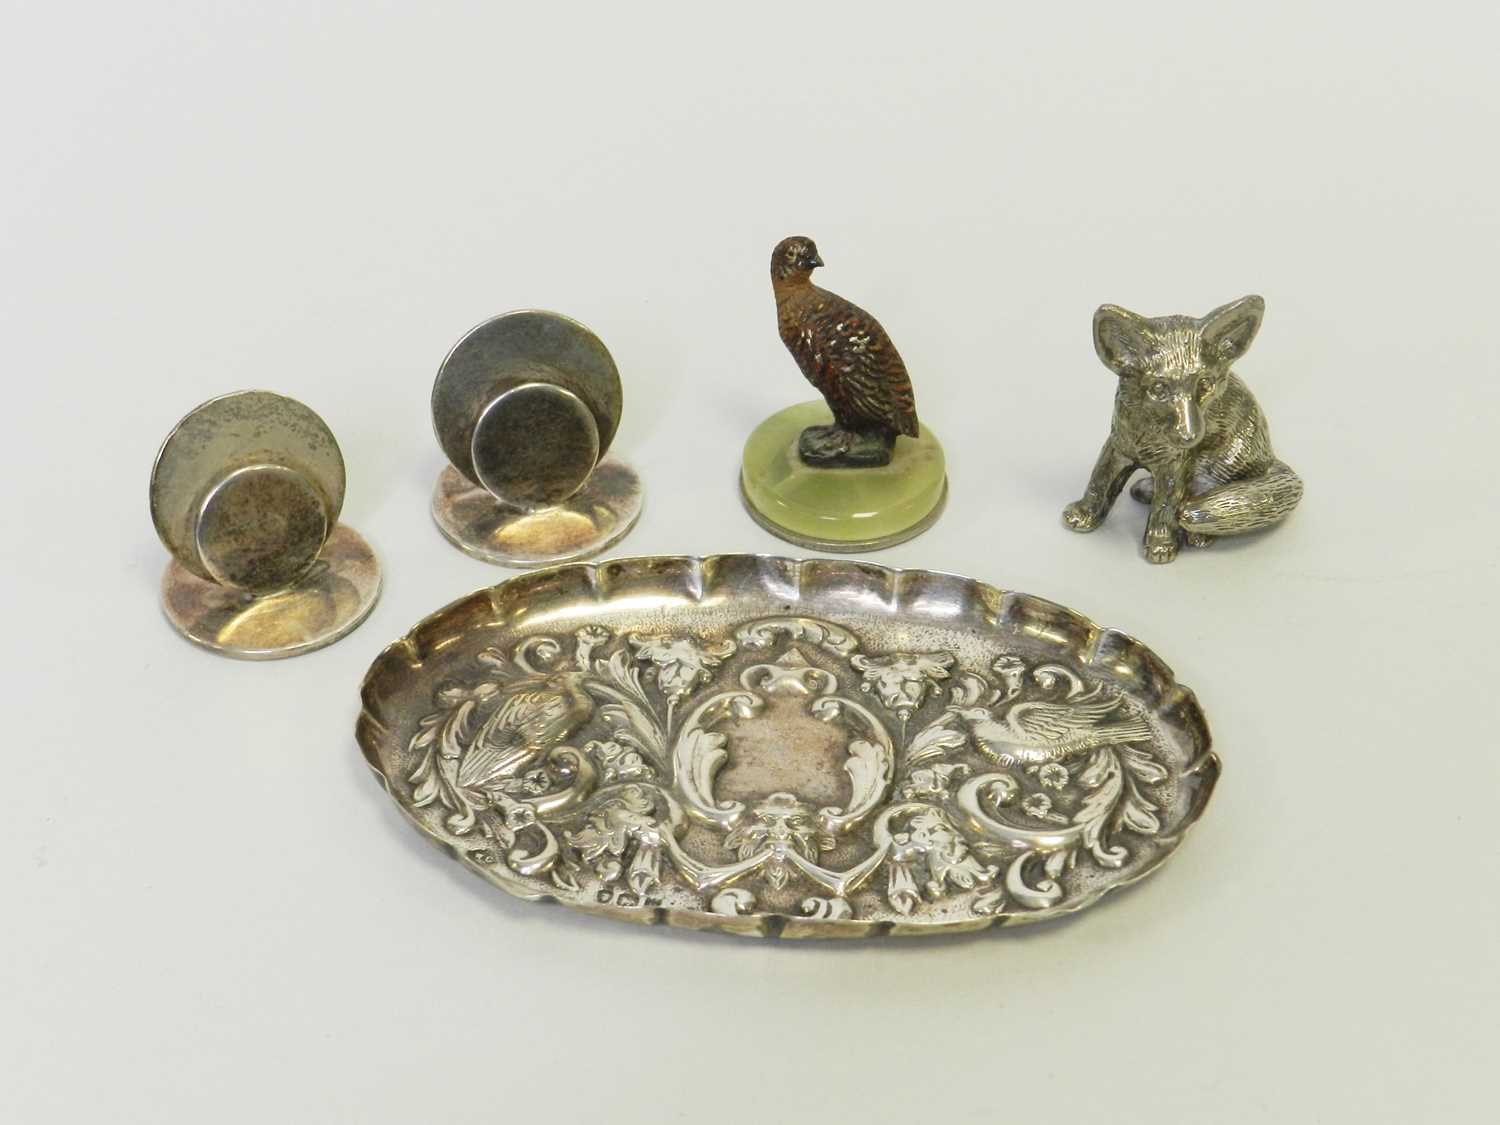 Lot 2 - A collection of silver and plate